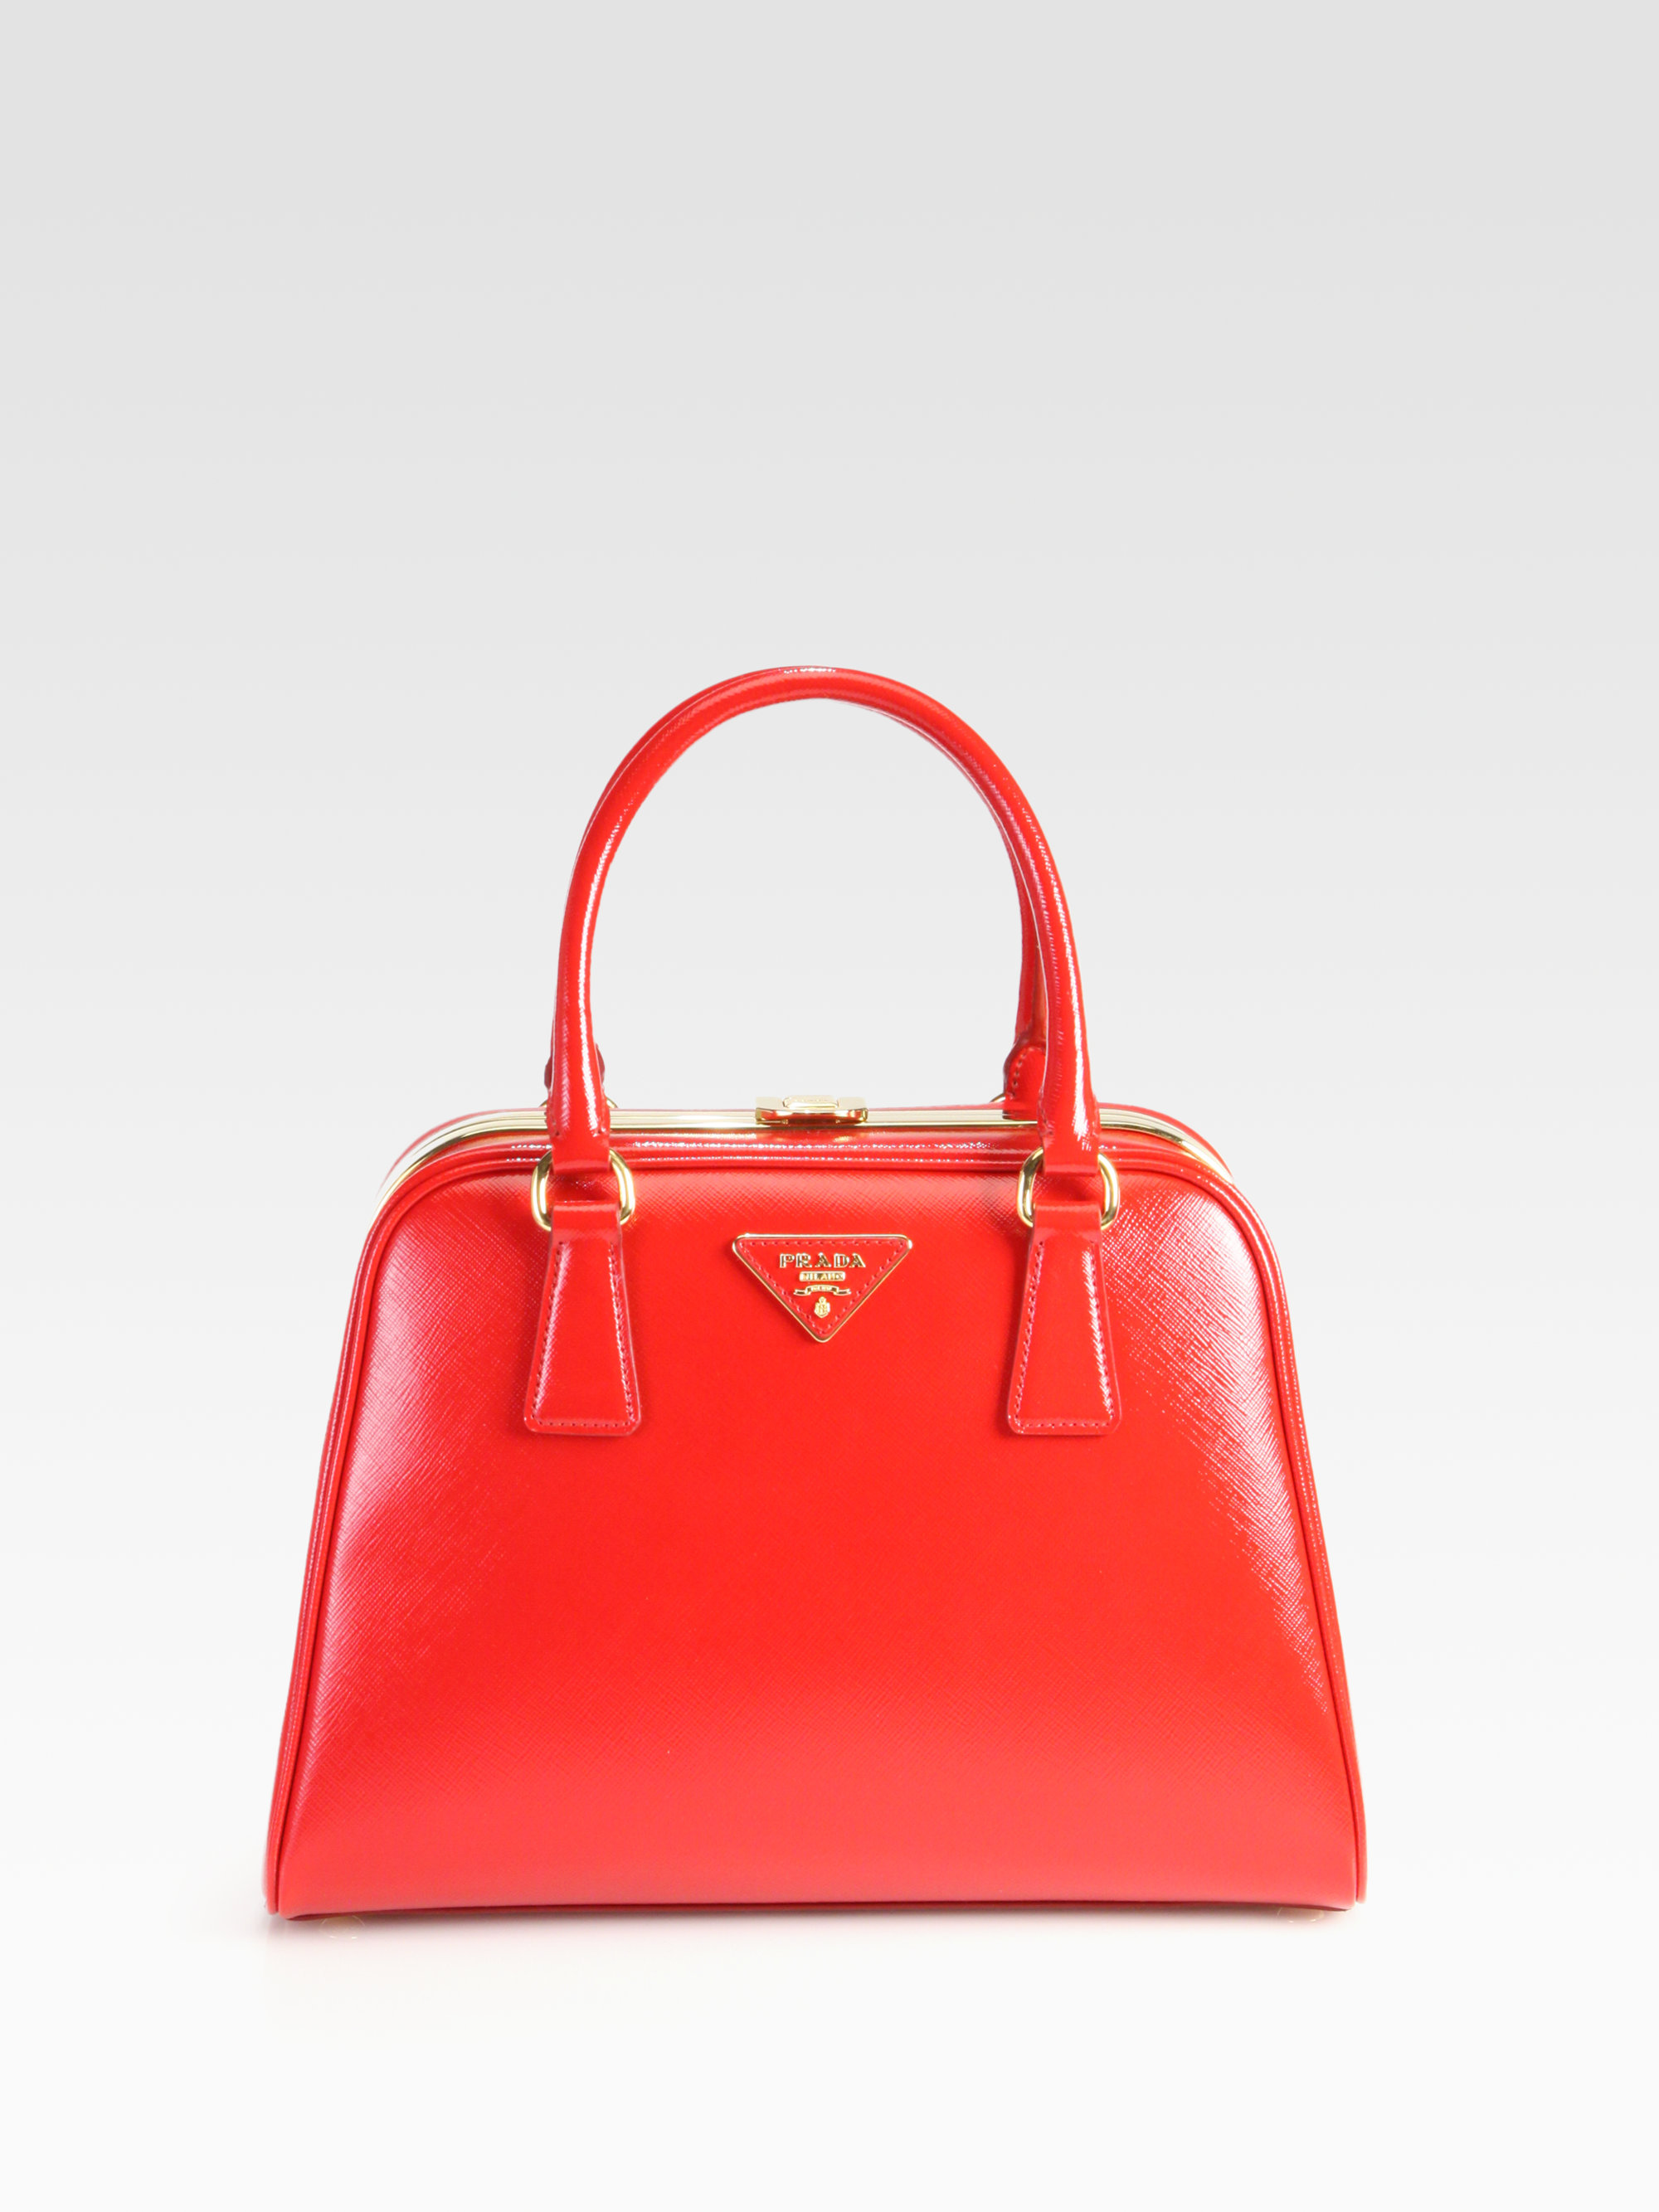 Lyst - Prada Saffiano Vernice Frame Pyramid Top Handle Bag in Red